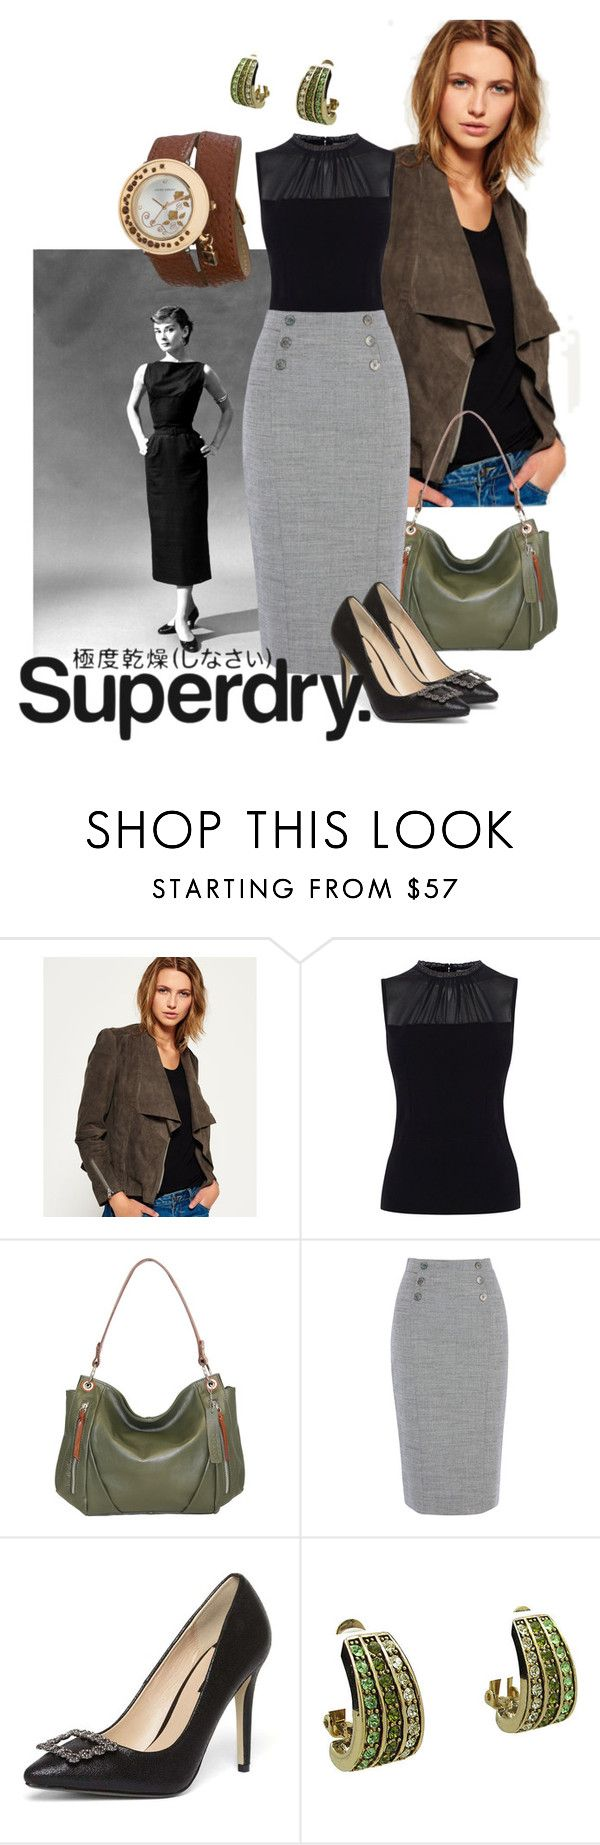 """""""Somewhat unstructured"""" by maria-kuroshchepova ❤ liked on Polyvore featuring Superdry, Karen Millen, Nino Bossi Handbags, Dorothy Perkins, Laura Ashley and MySuperdry"""